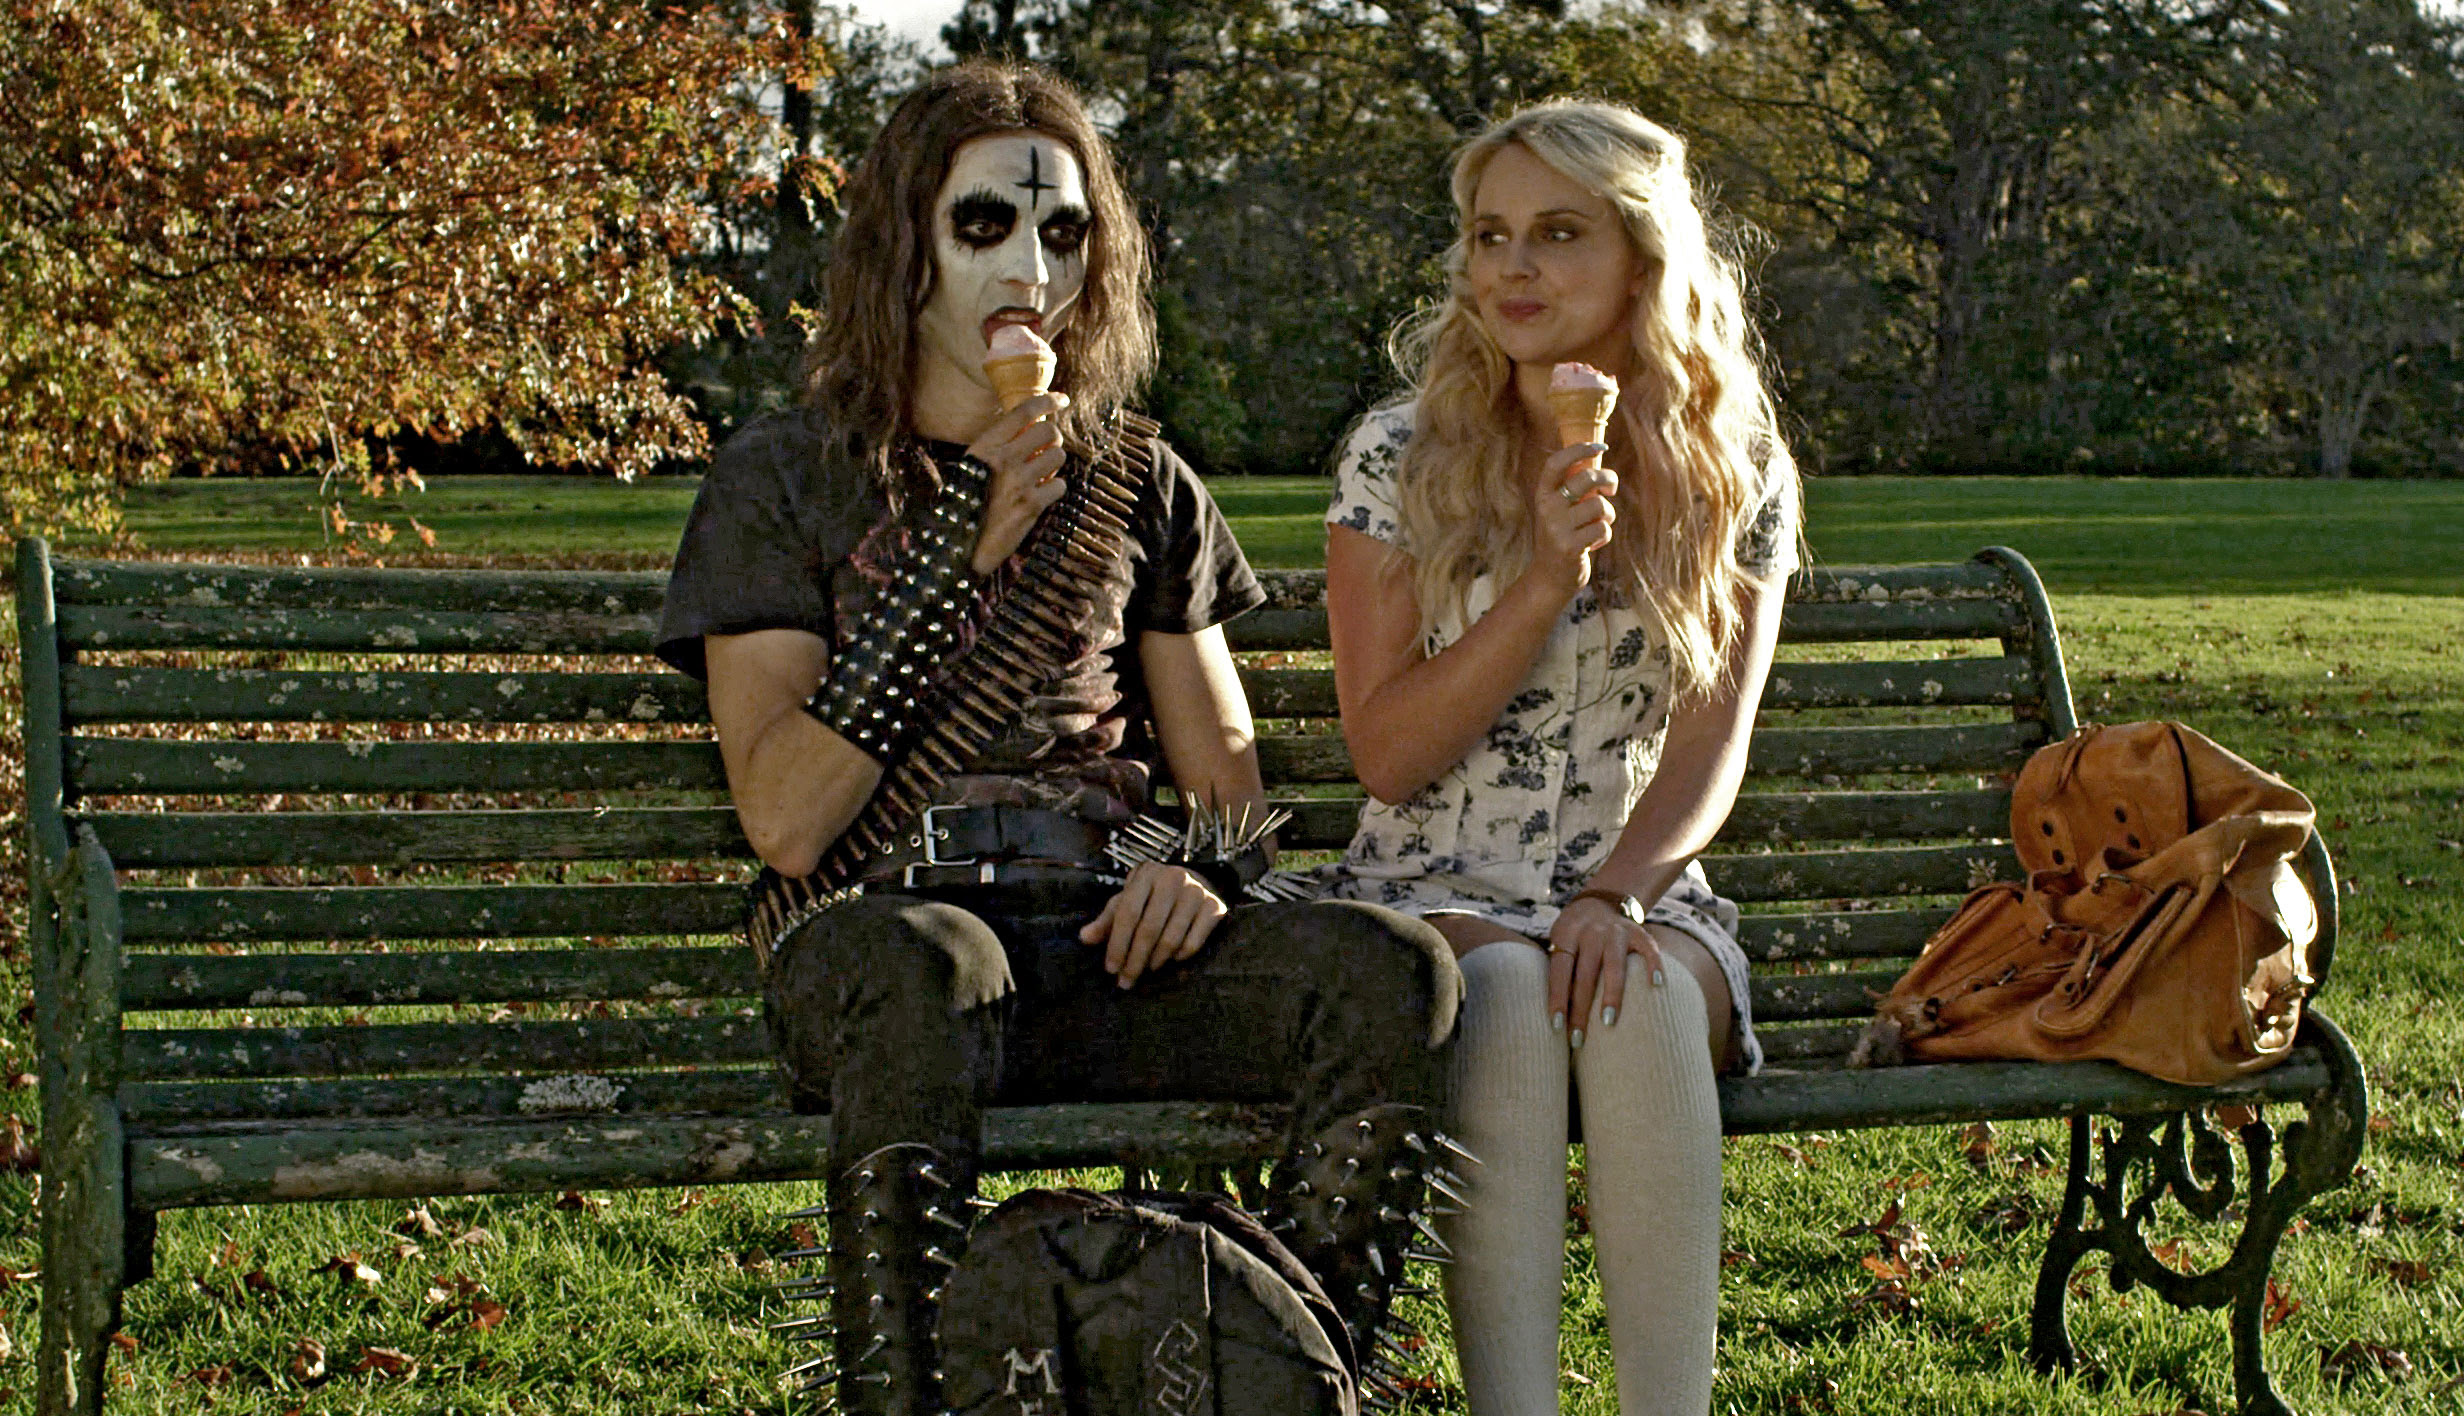 Deathgasm even does romance!